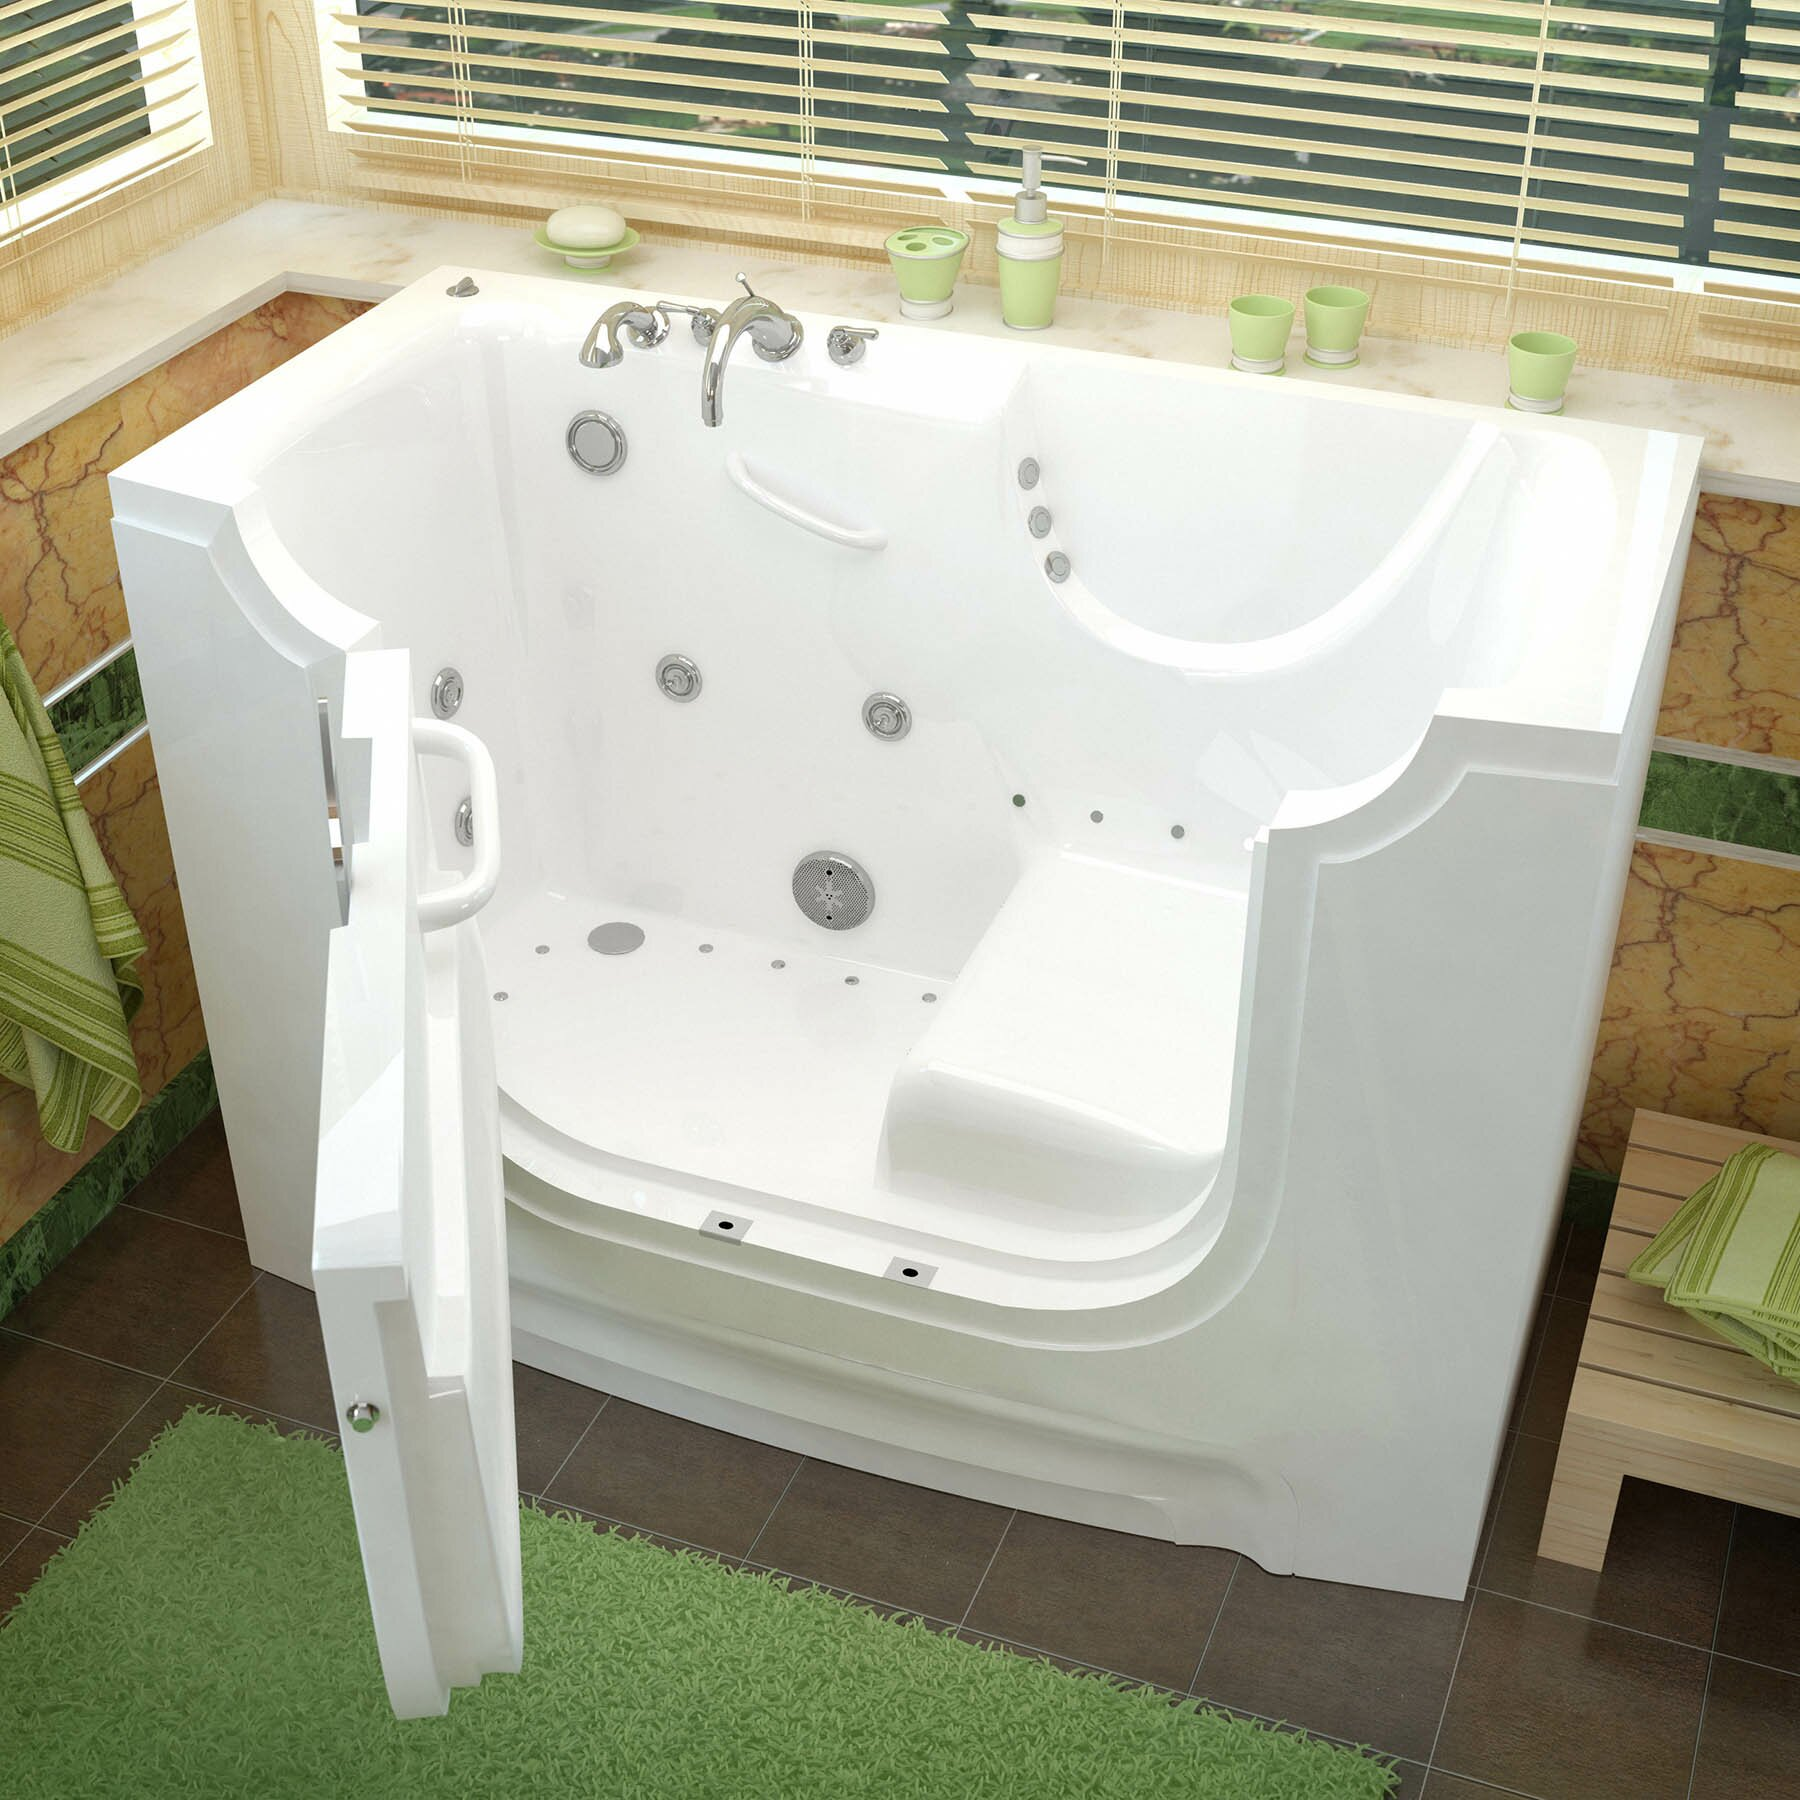 Therapeutic tubs handitub 60 x 30 whirlpool air jetted for Wheelchair accessible homes for sale near me